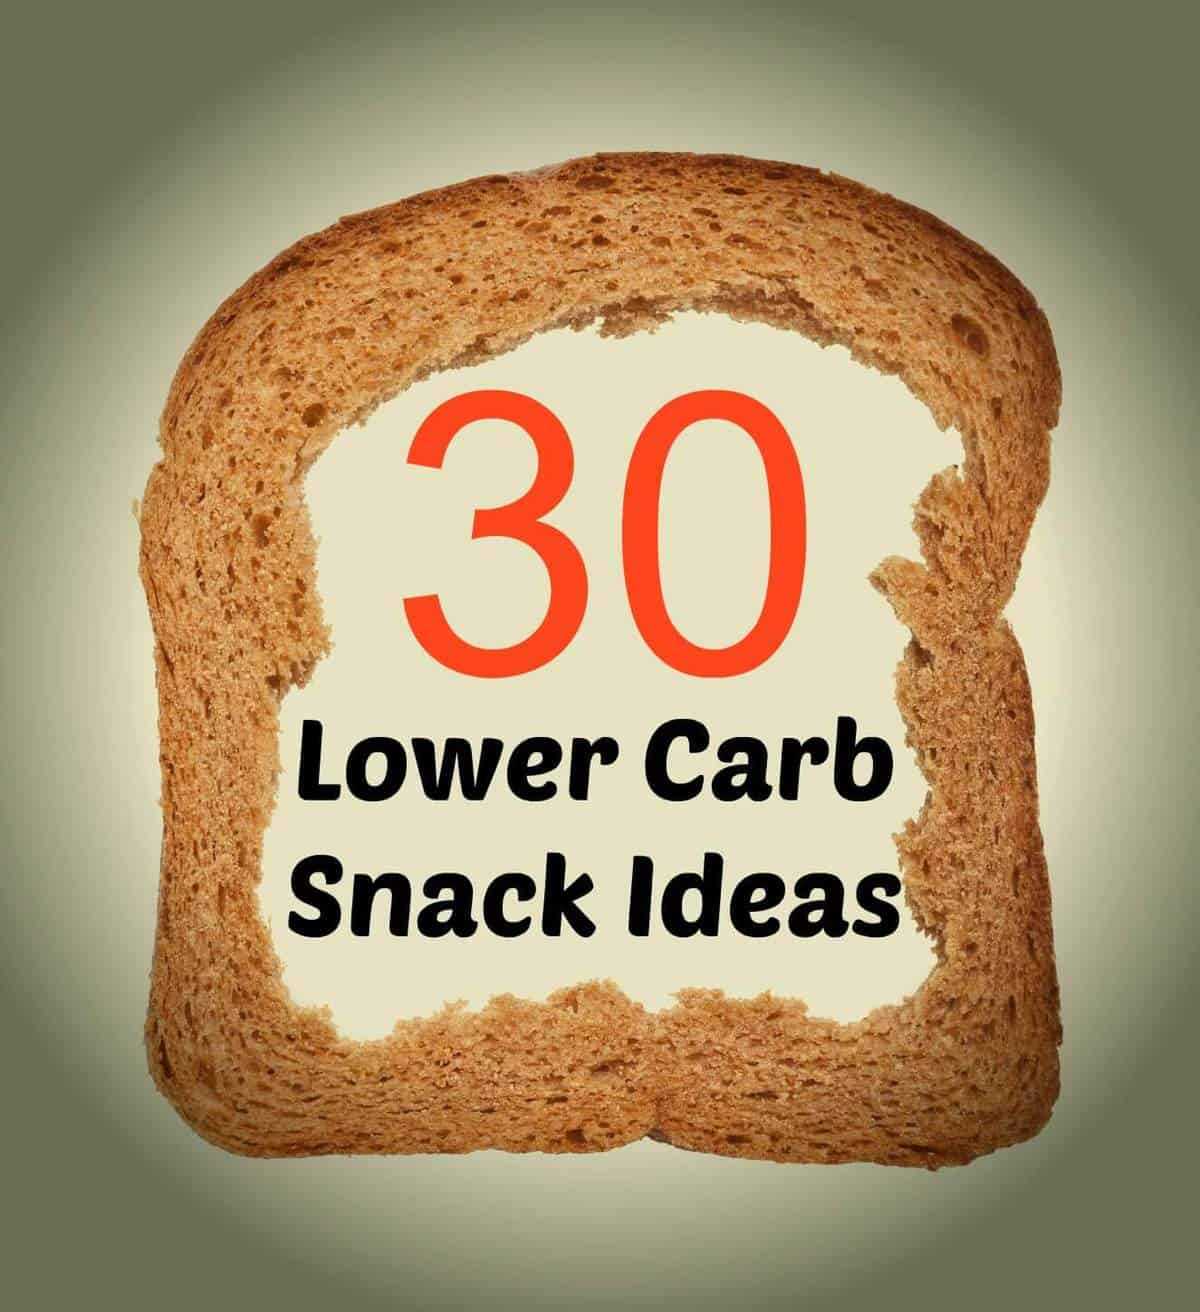 30 Lower Carb Snack Ideas